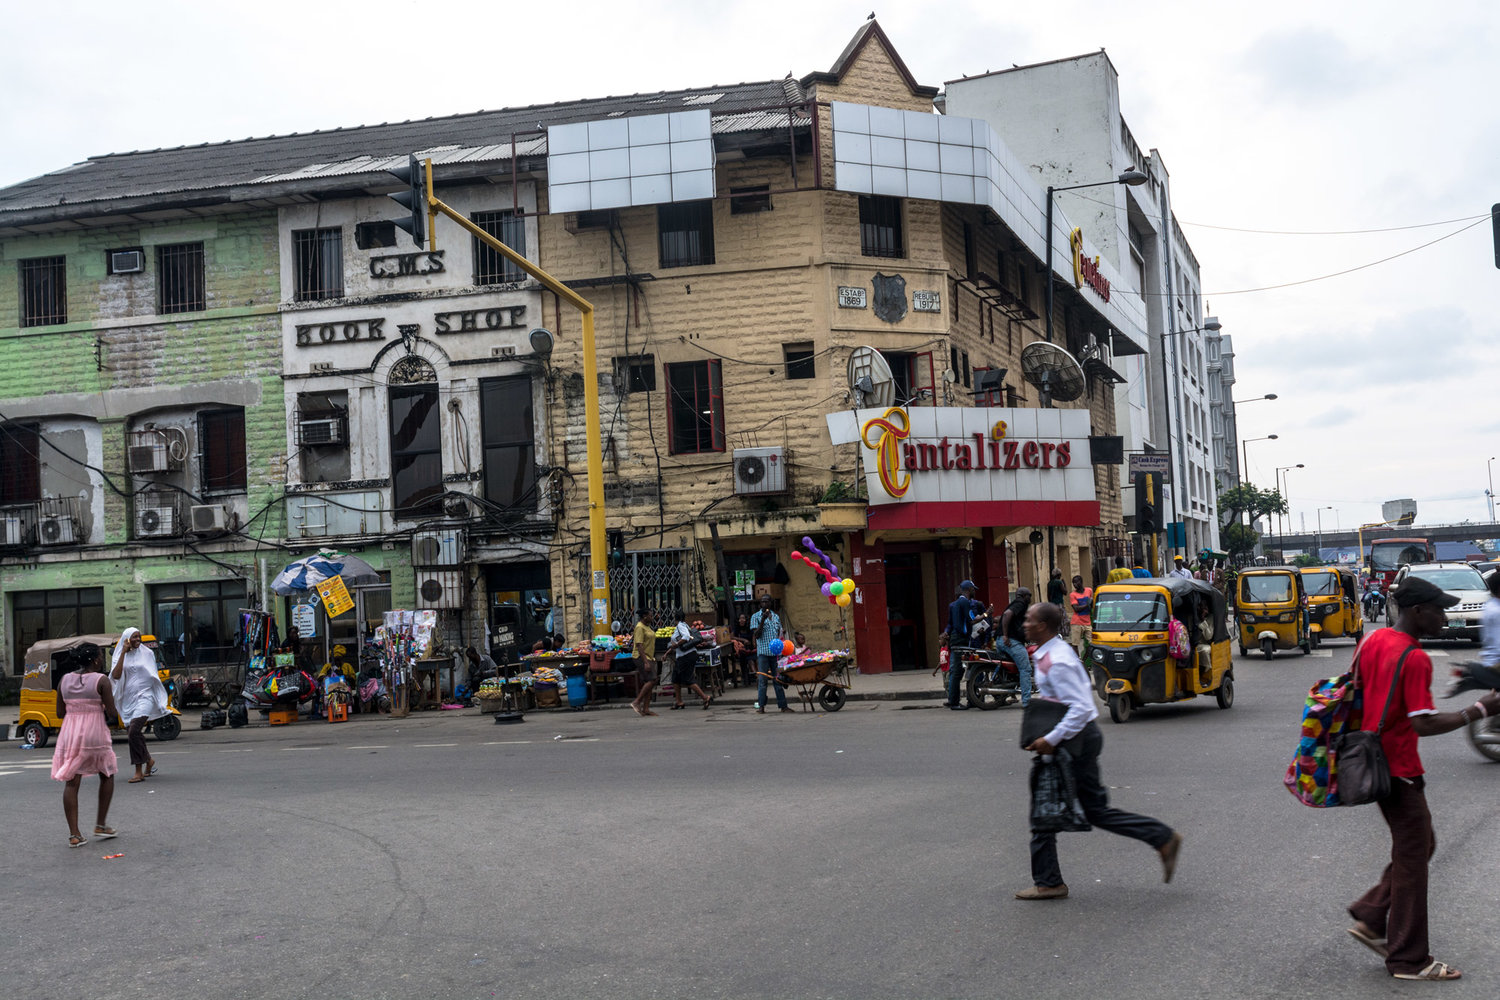 The Church Missionary Society Bookshop in Lagos, an important historic place for Yorùbá language studies. ©Aderemi Adegbite